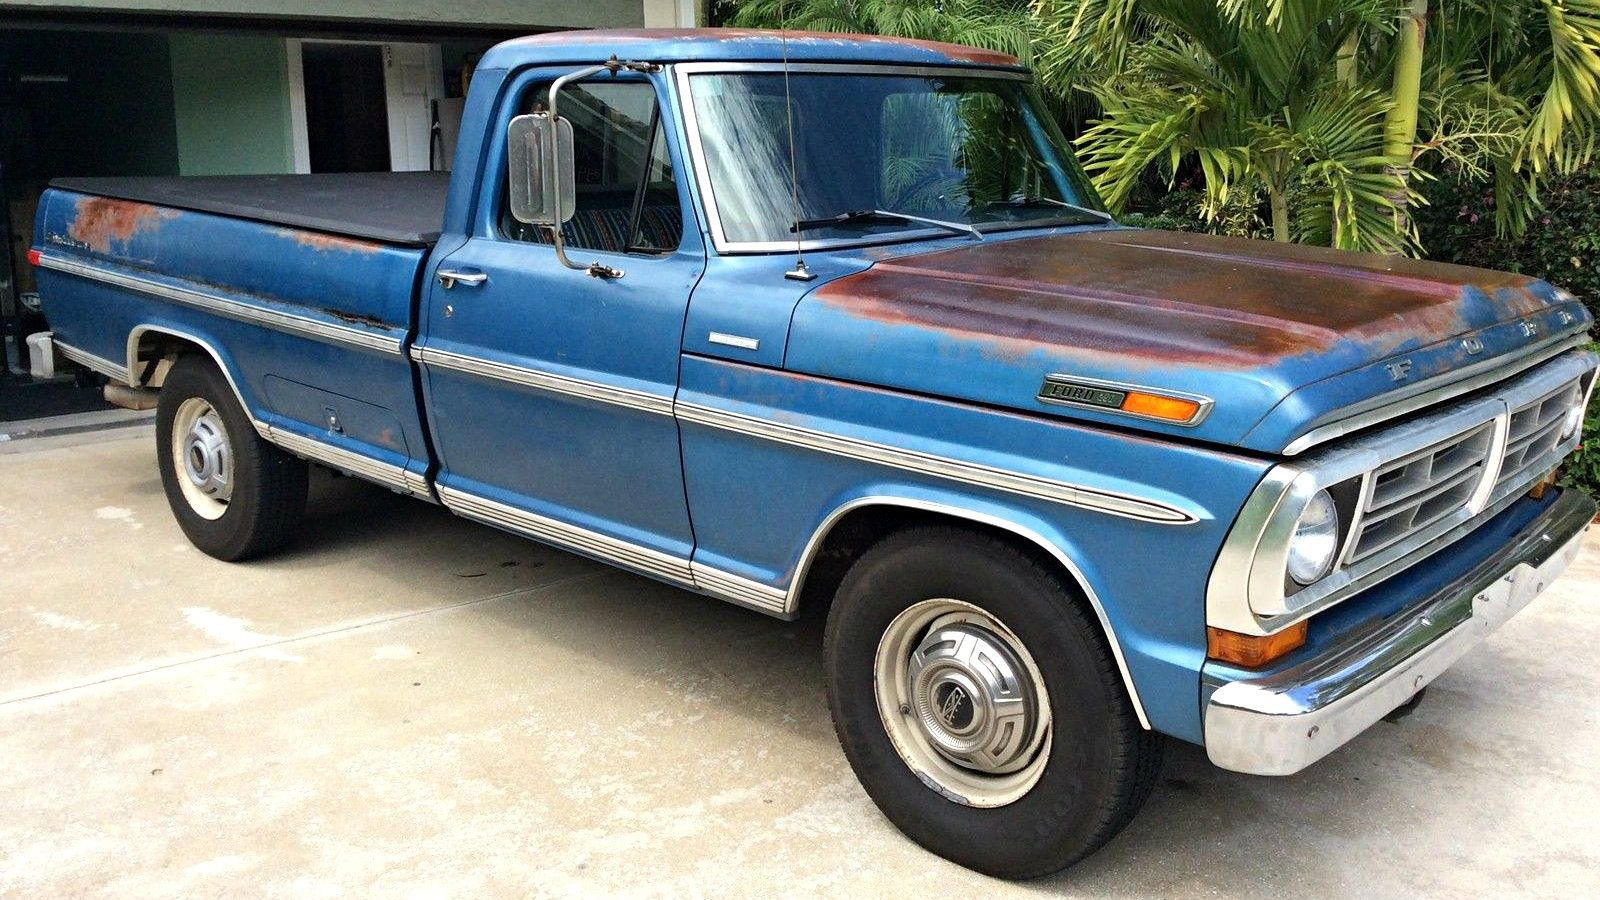 Tow ready classic 1972 ford f 250 camper special http